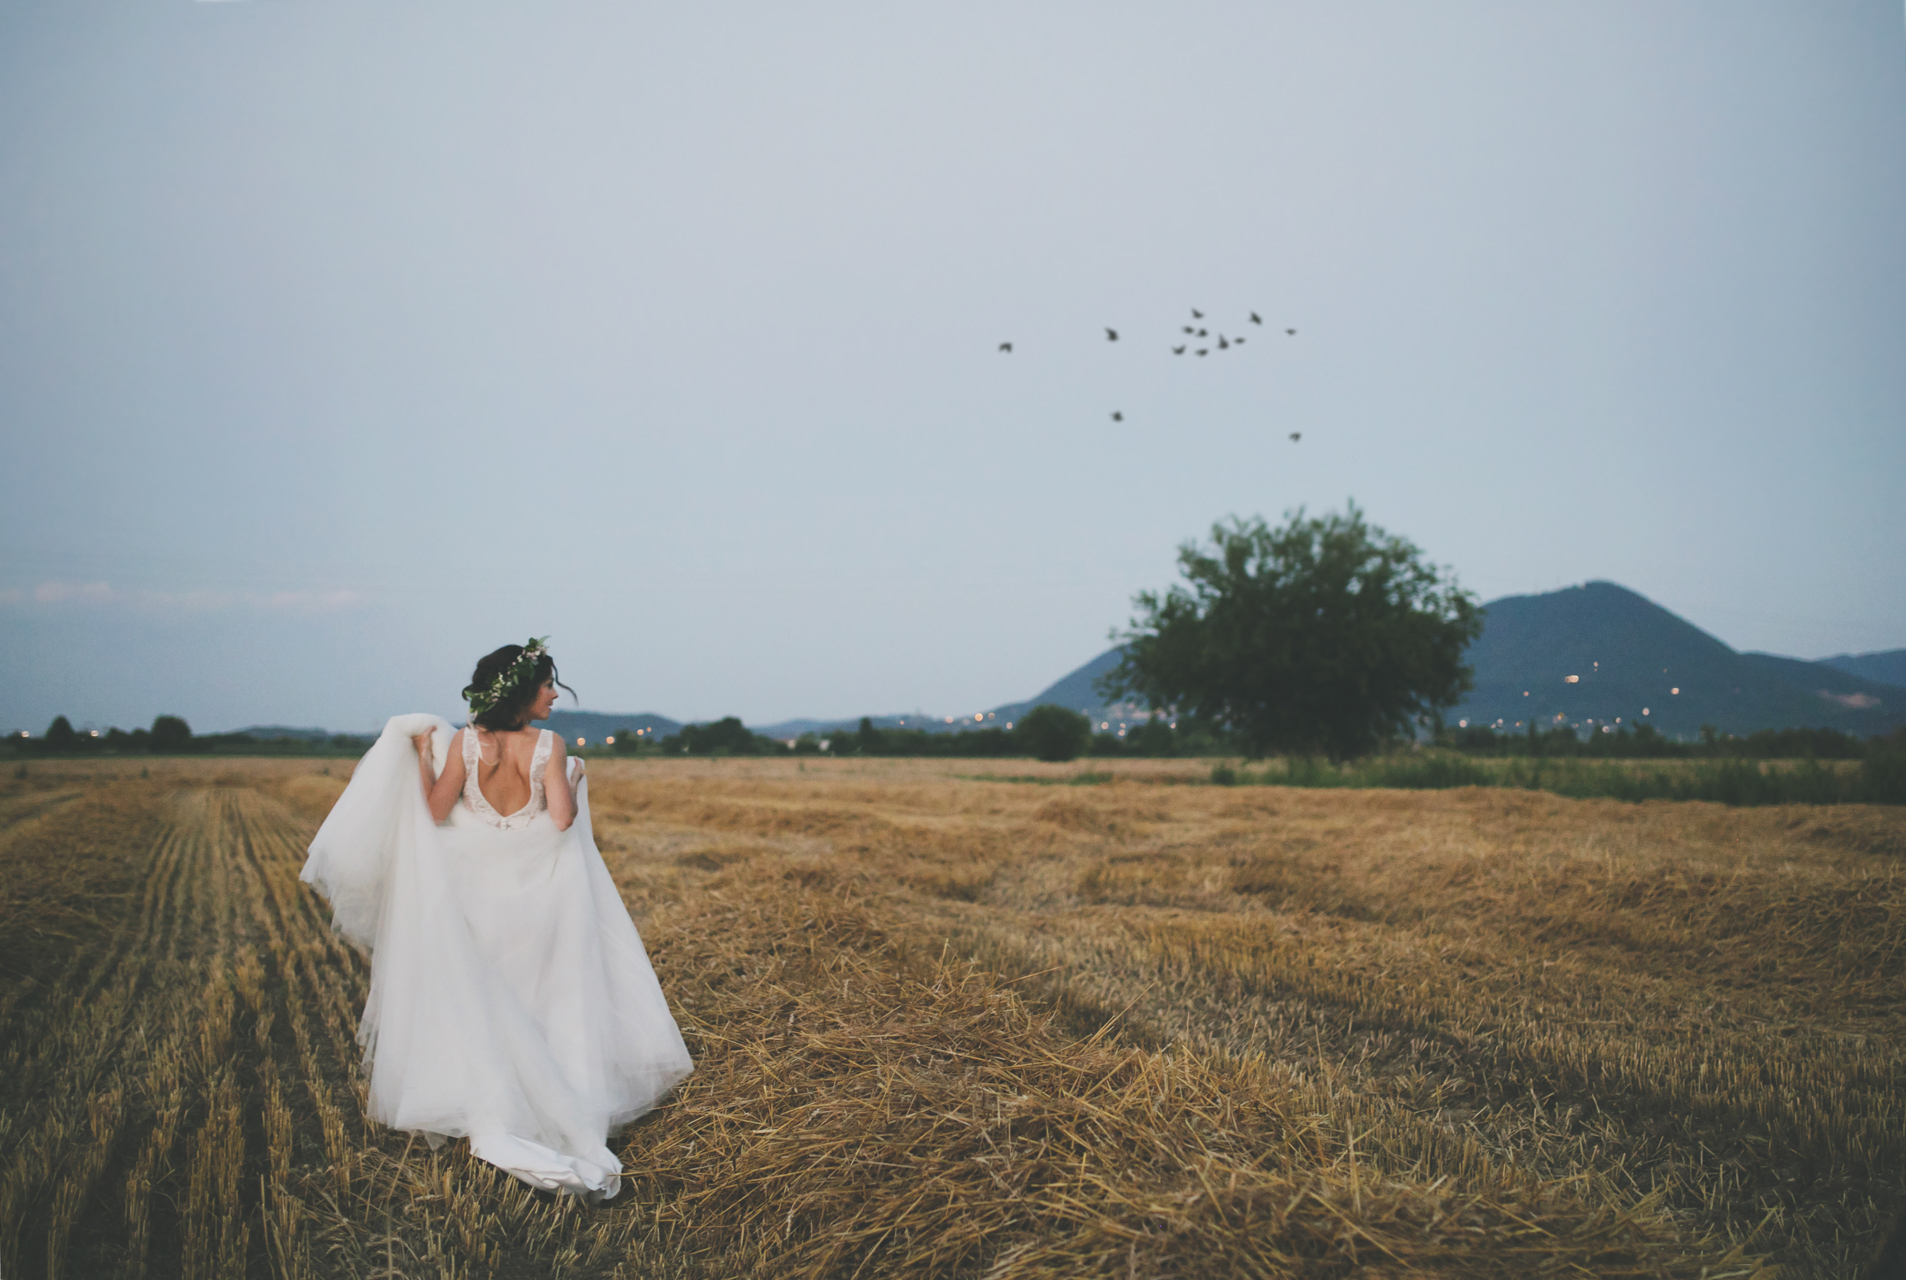 Matrimonio Rustico Vicenza : Matrimonio vicenza country chic location